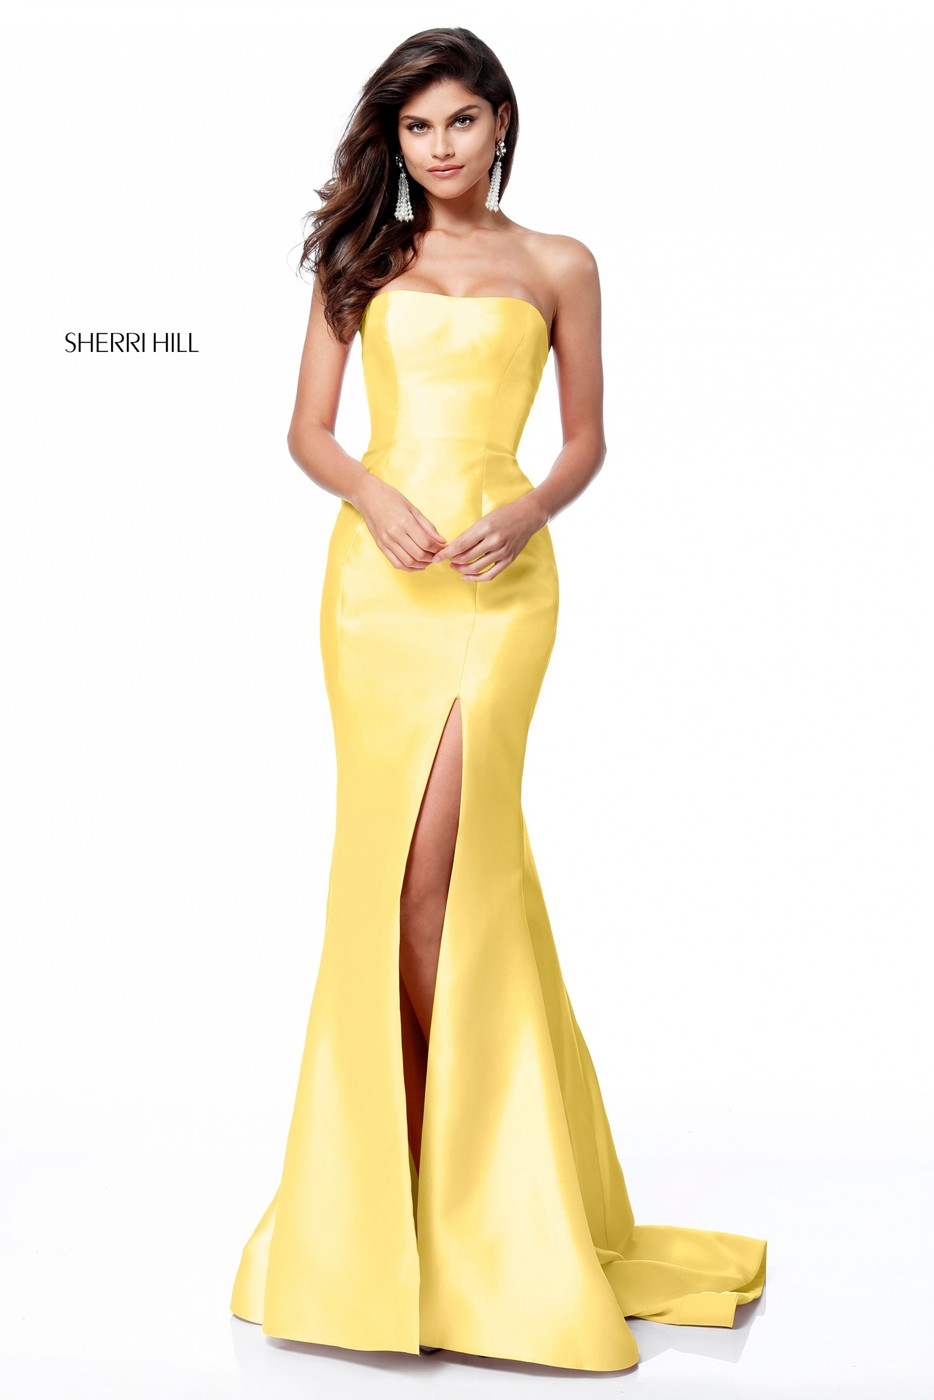 Sherri Hill 51671 Dress - MadameBridal.com